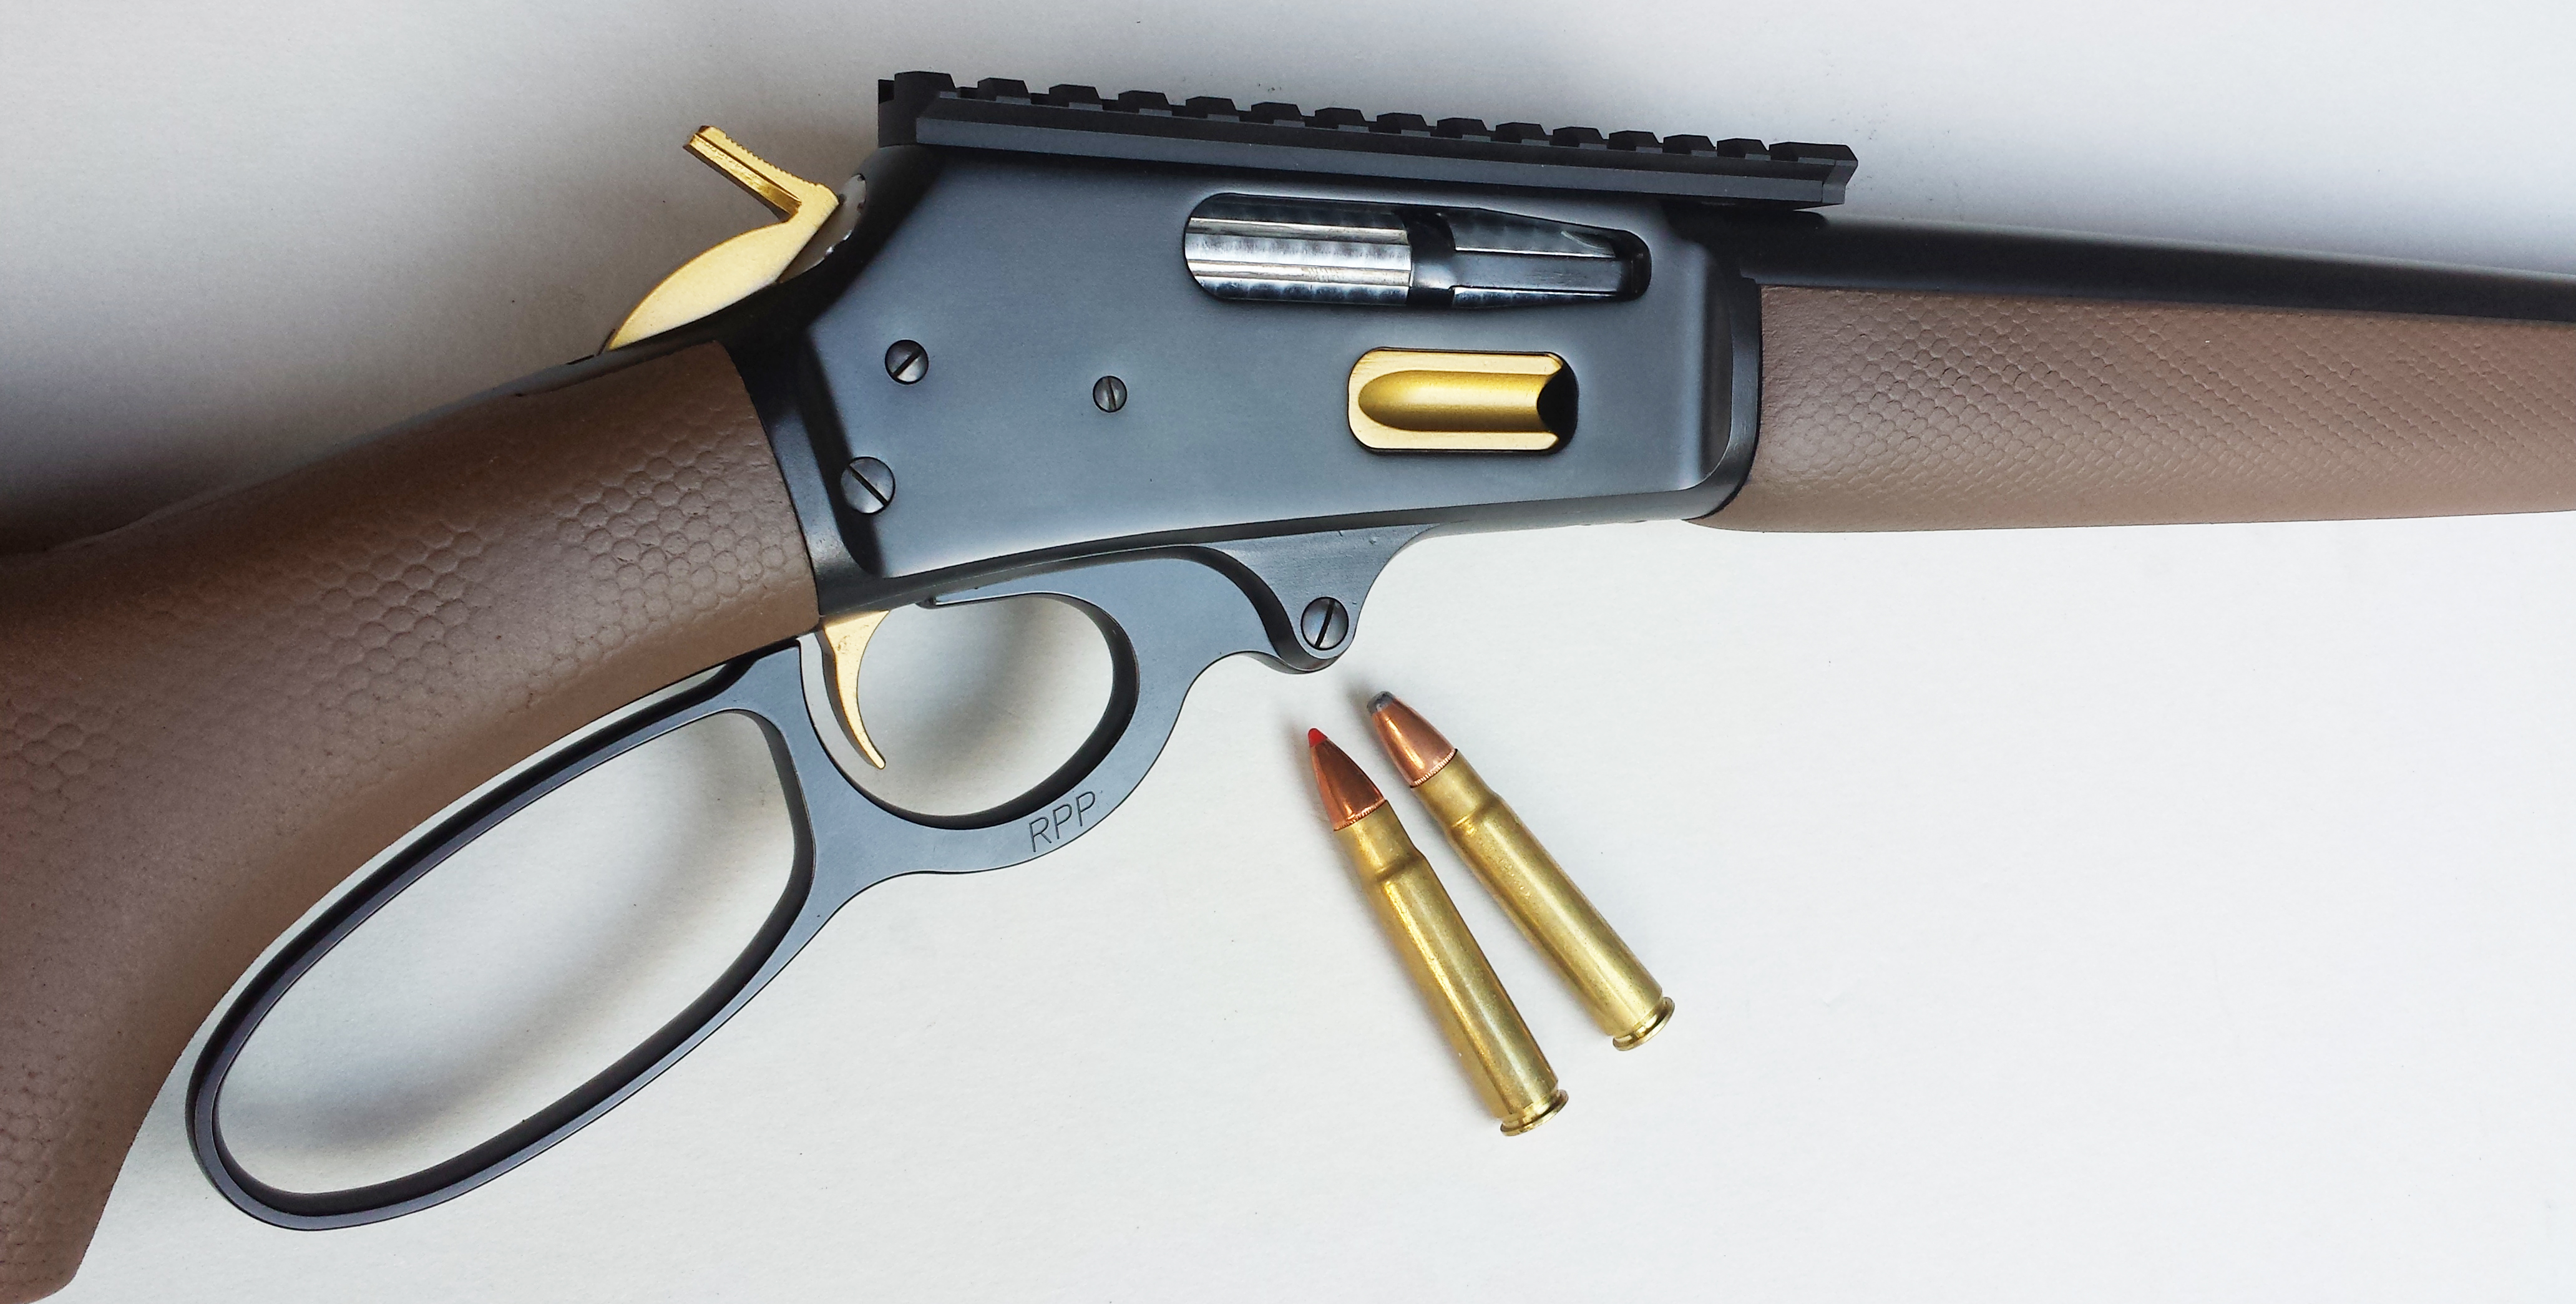 Marlin 36 RPP Lever-Action - As Powerful as a .356 Win with Safe Pressures